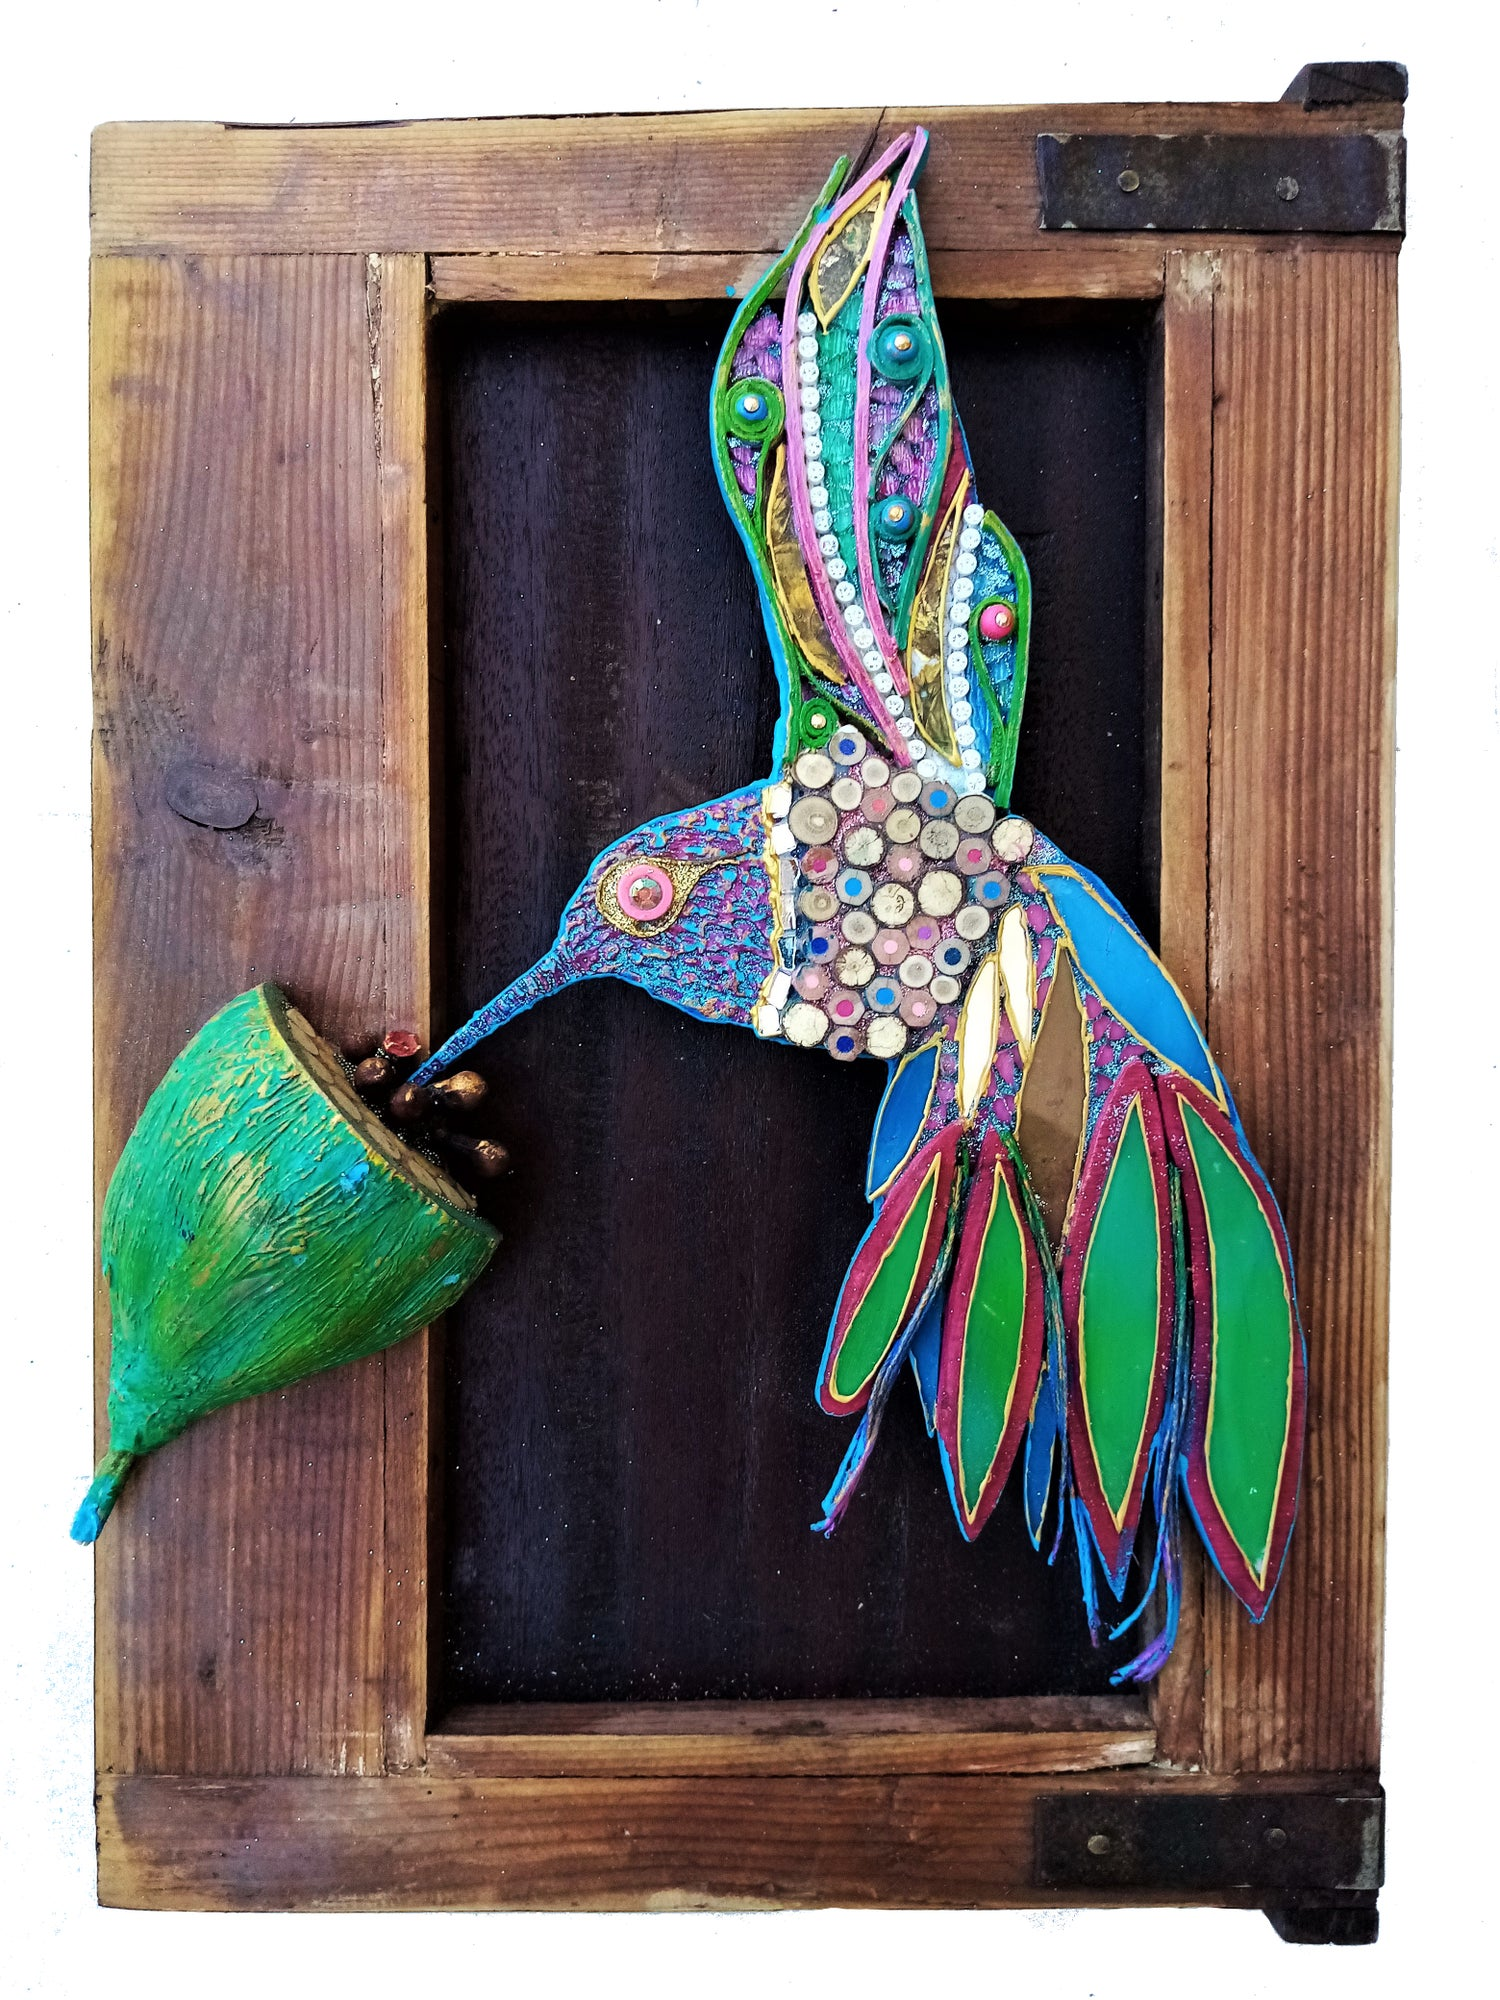 Image of Colibrì su vecchia anta/Hummingbird on old cabinet window